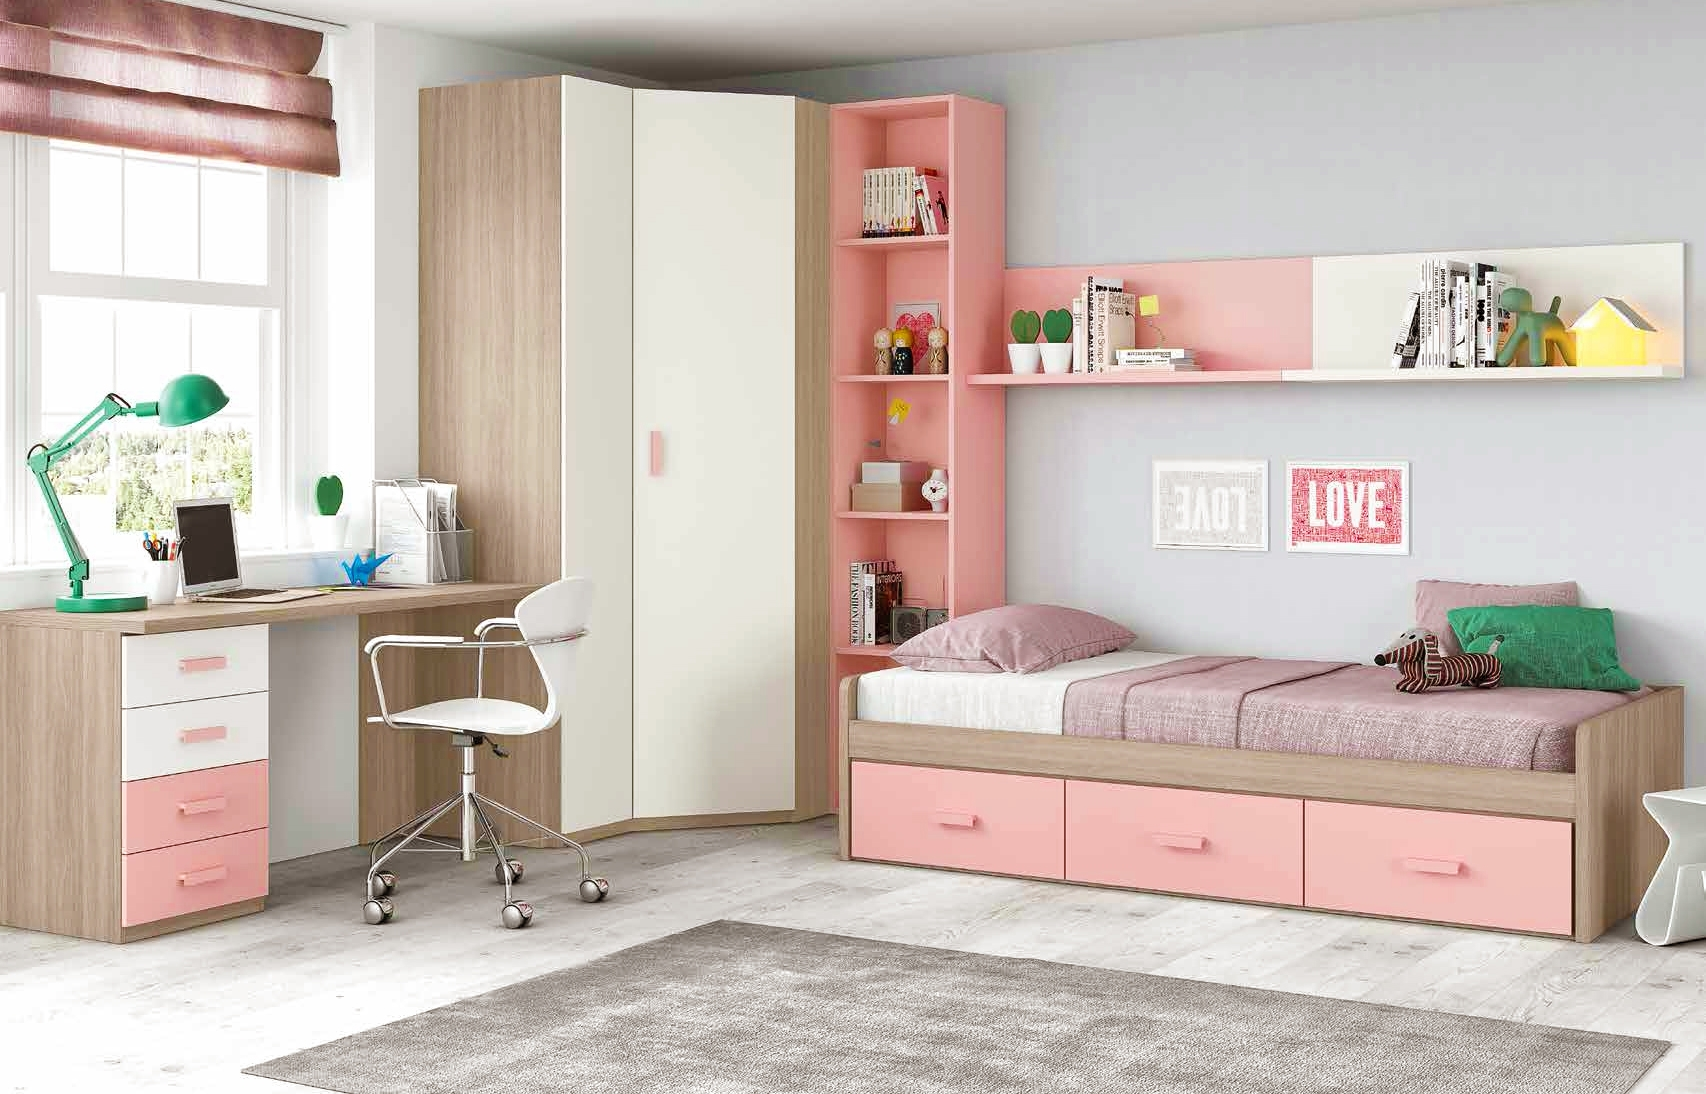 Couleur chambre fille rose et gris for Photo de chambre ado fille